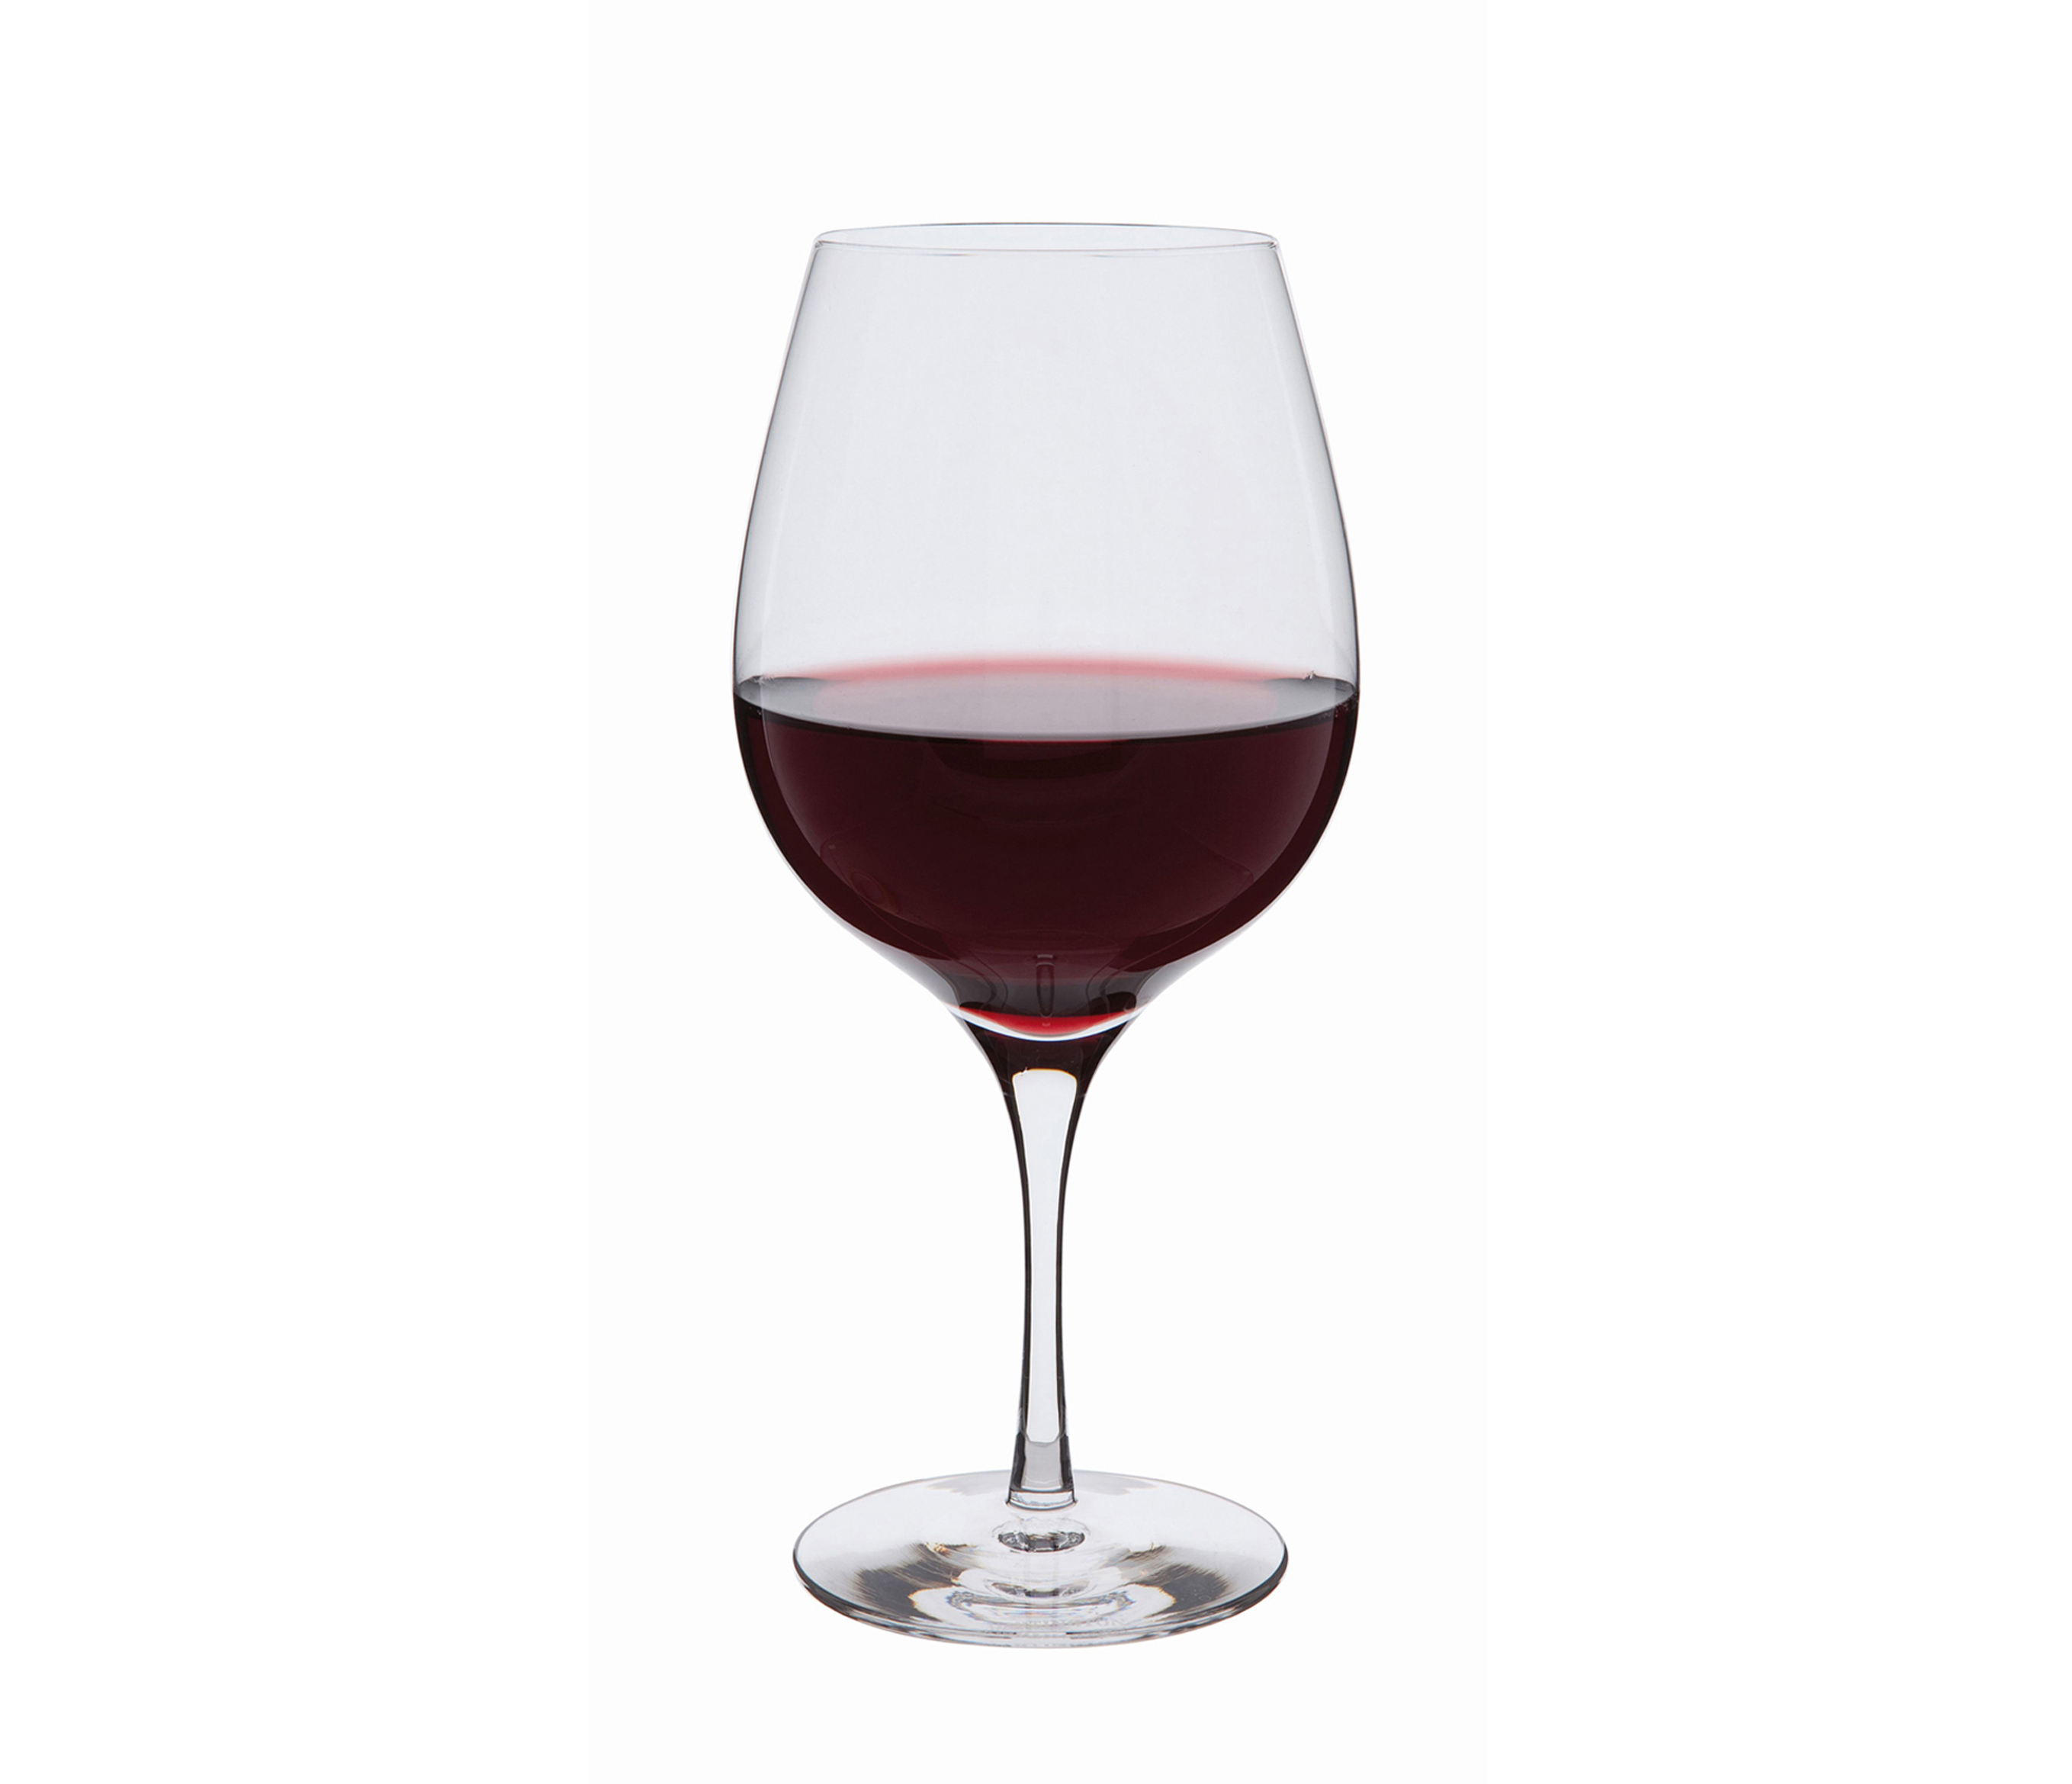 Larger red wine glass